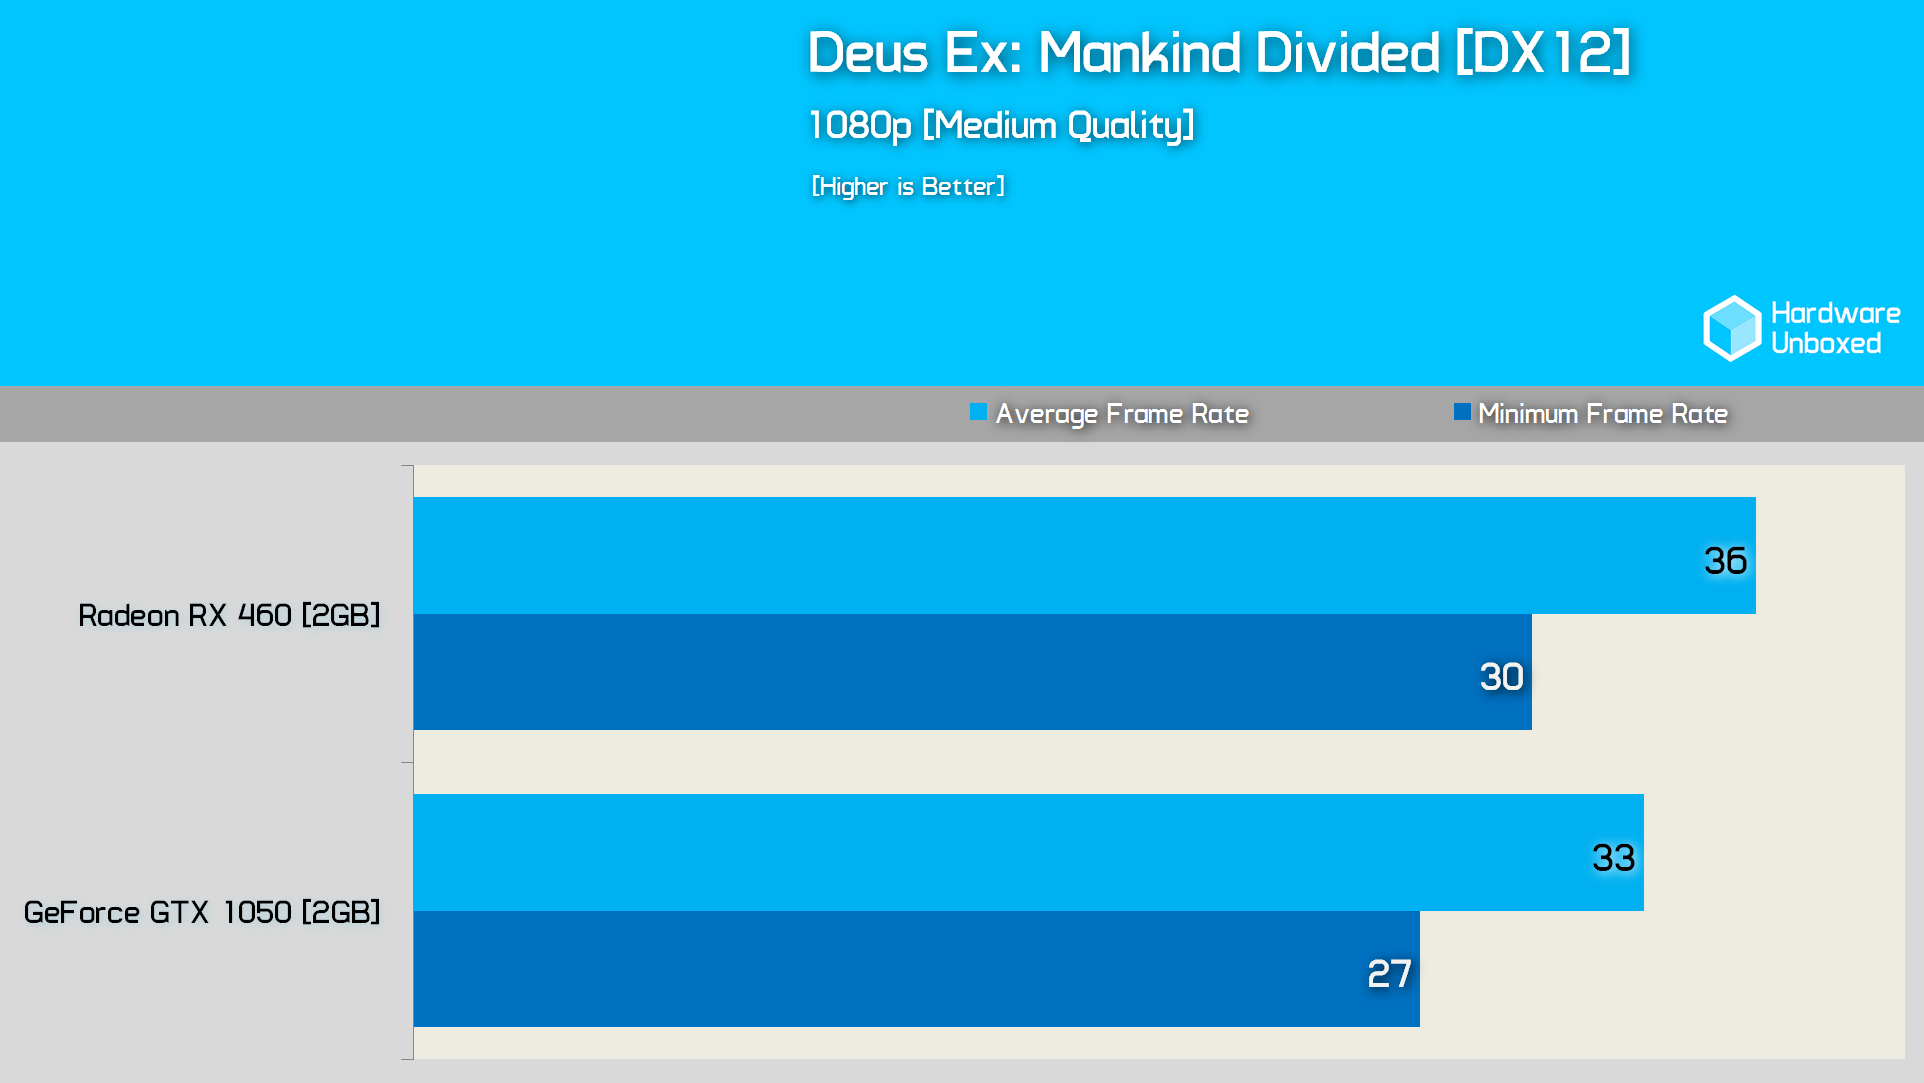 deus-mankind-divided